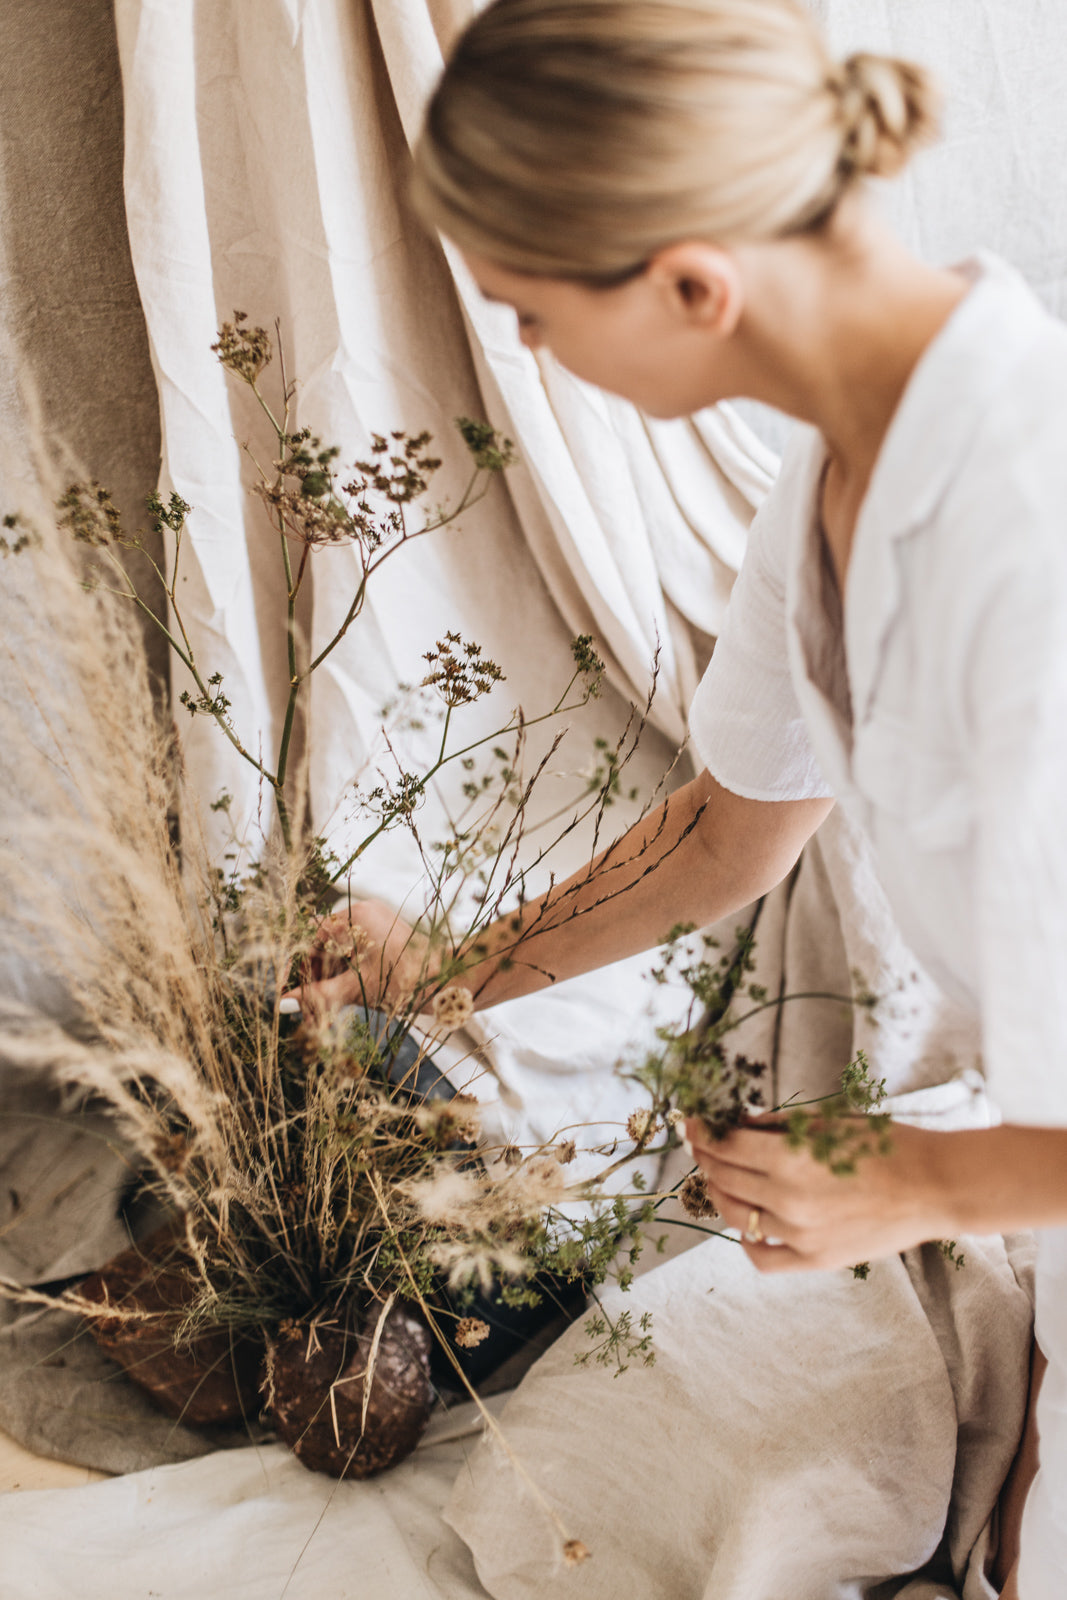 Floral design, natural elements in our seasonal shoot